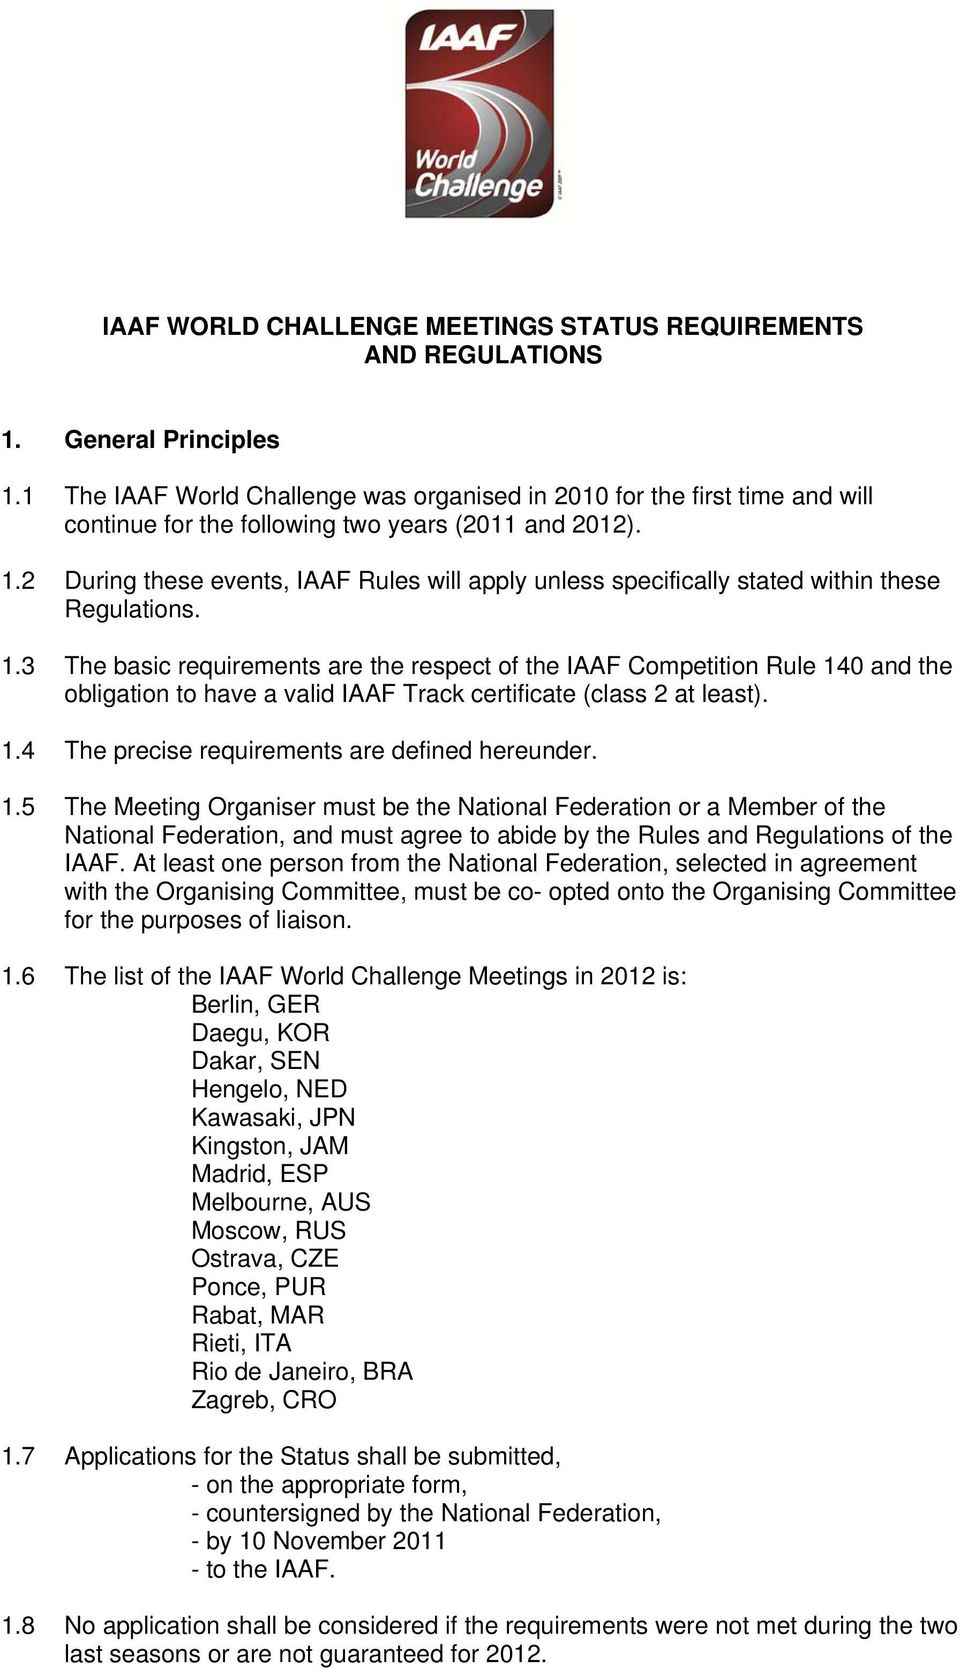 2 During these events, IAAF Rules will apply unless specifically stated within these Regulations. 1.